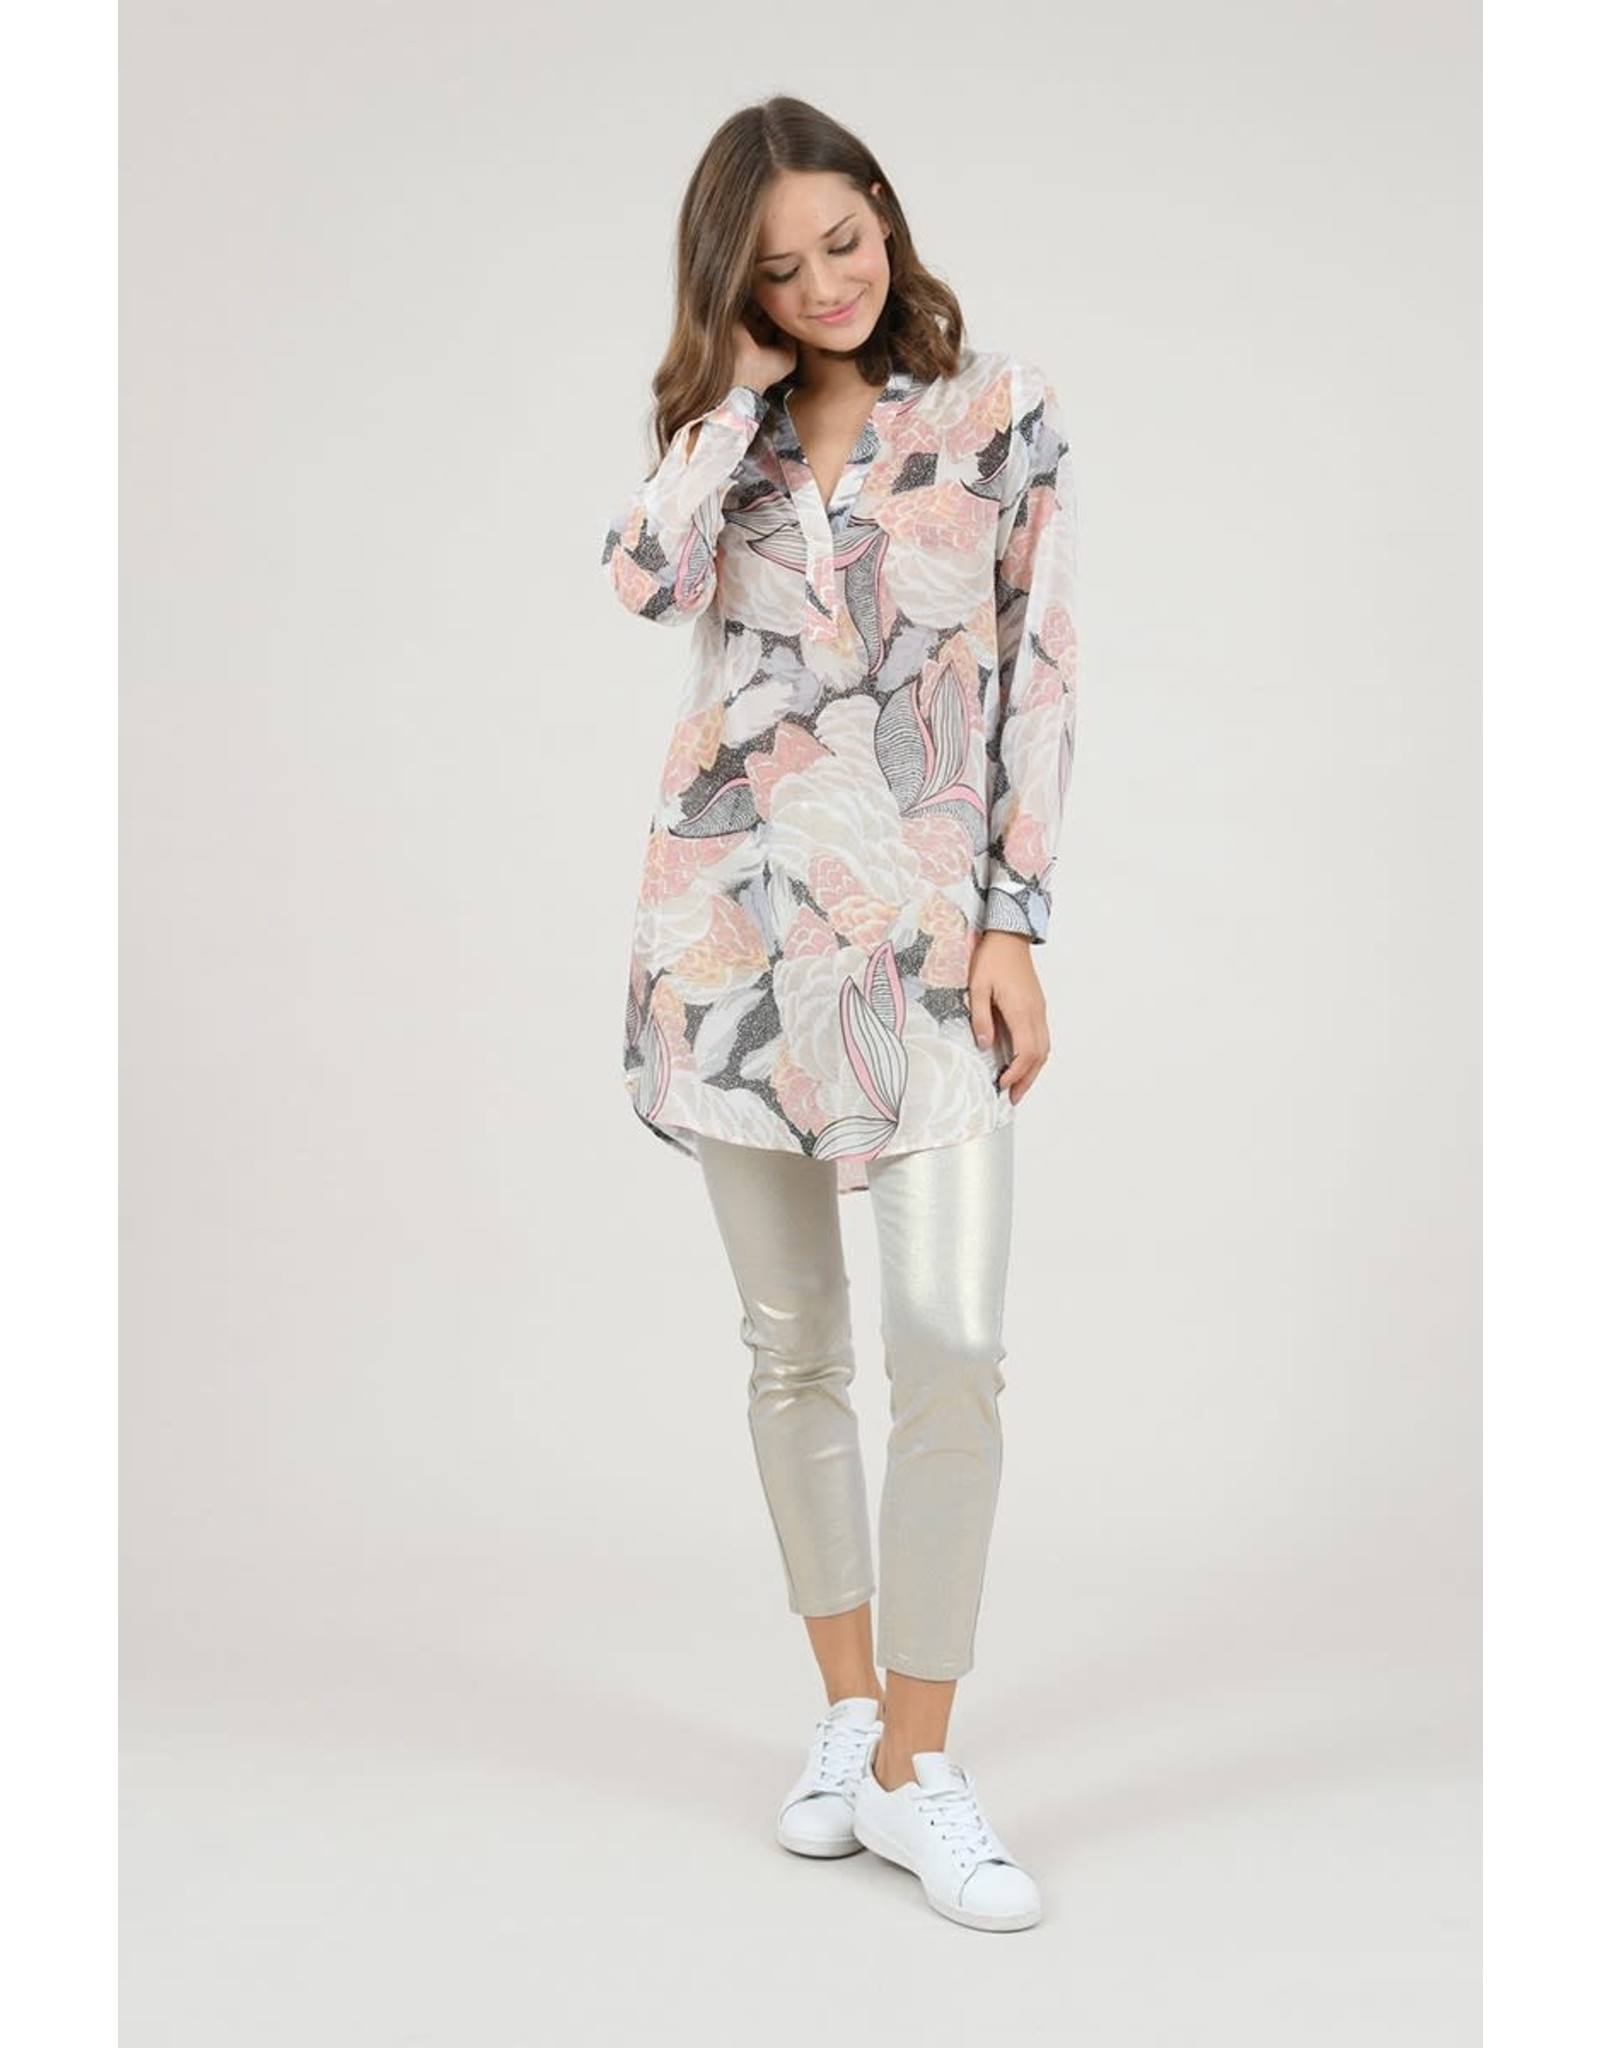 Molly Bracken, Printed Tunic, Lotus Pink